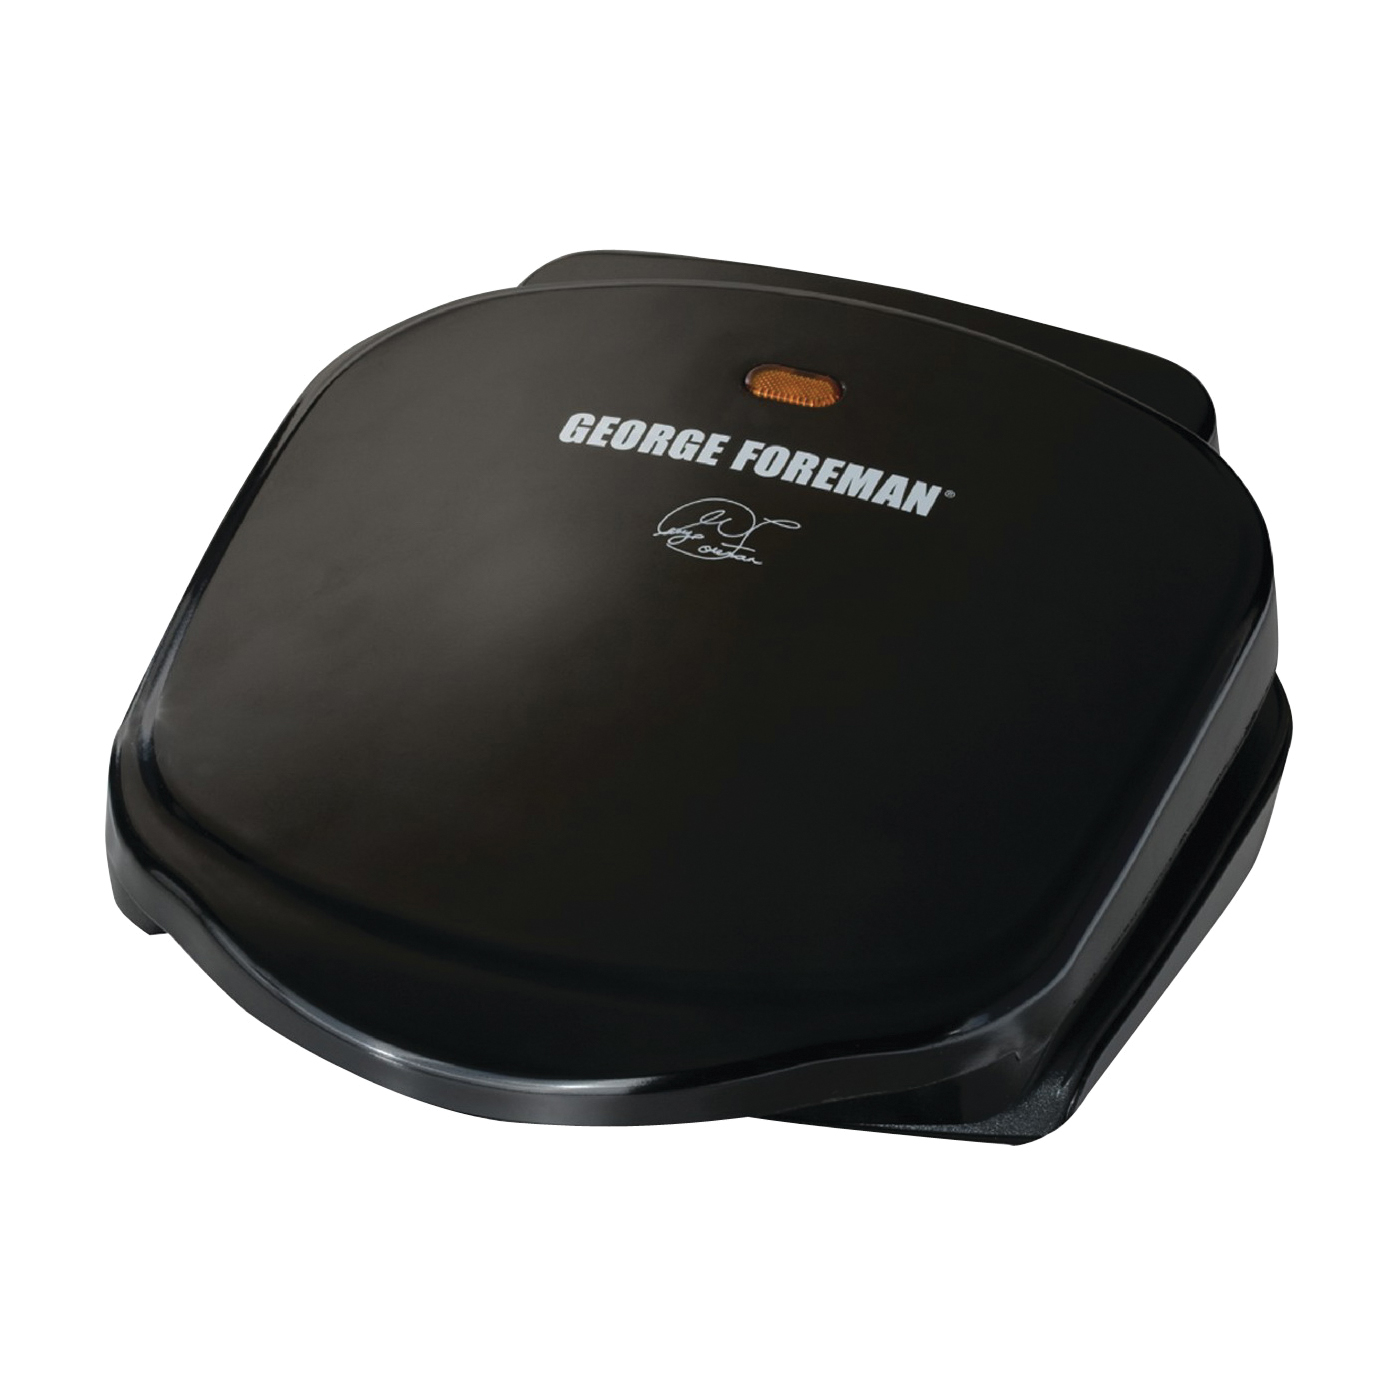 Picture of George Foreman GR10B Plate Grill, 18 in W Cooking Surface, 18 in D Cooking Surface, 760 W, 120 V, Black